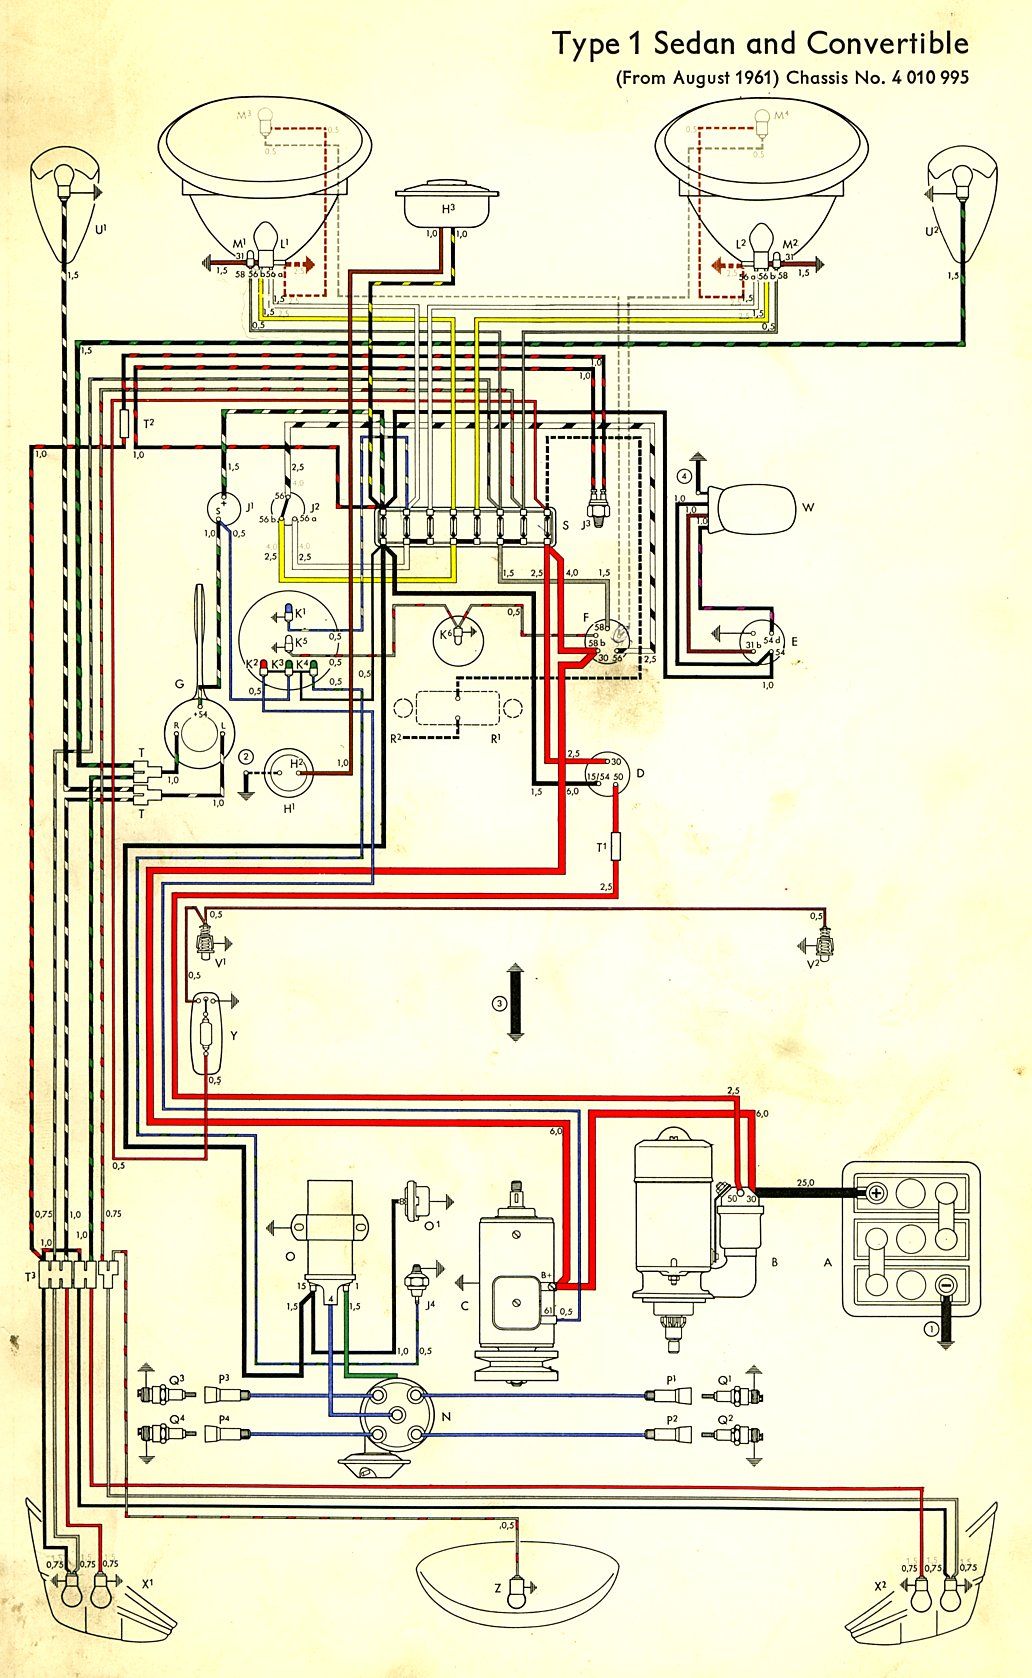 bug_62 1962 beetle wiring diagram thegoldenbug com 1963 vw wiring diagram at alyssarenee.co